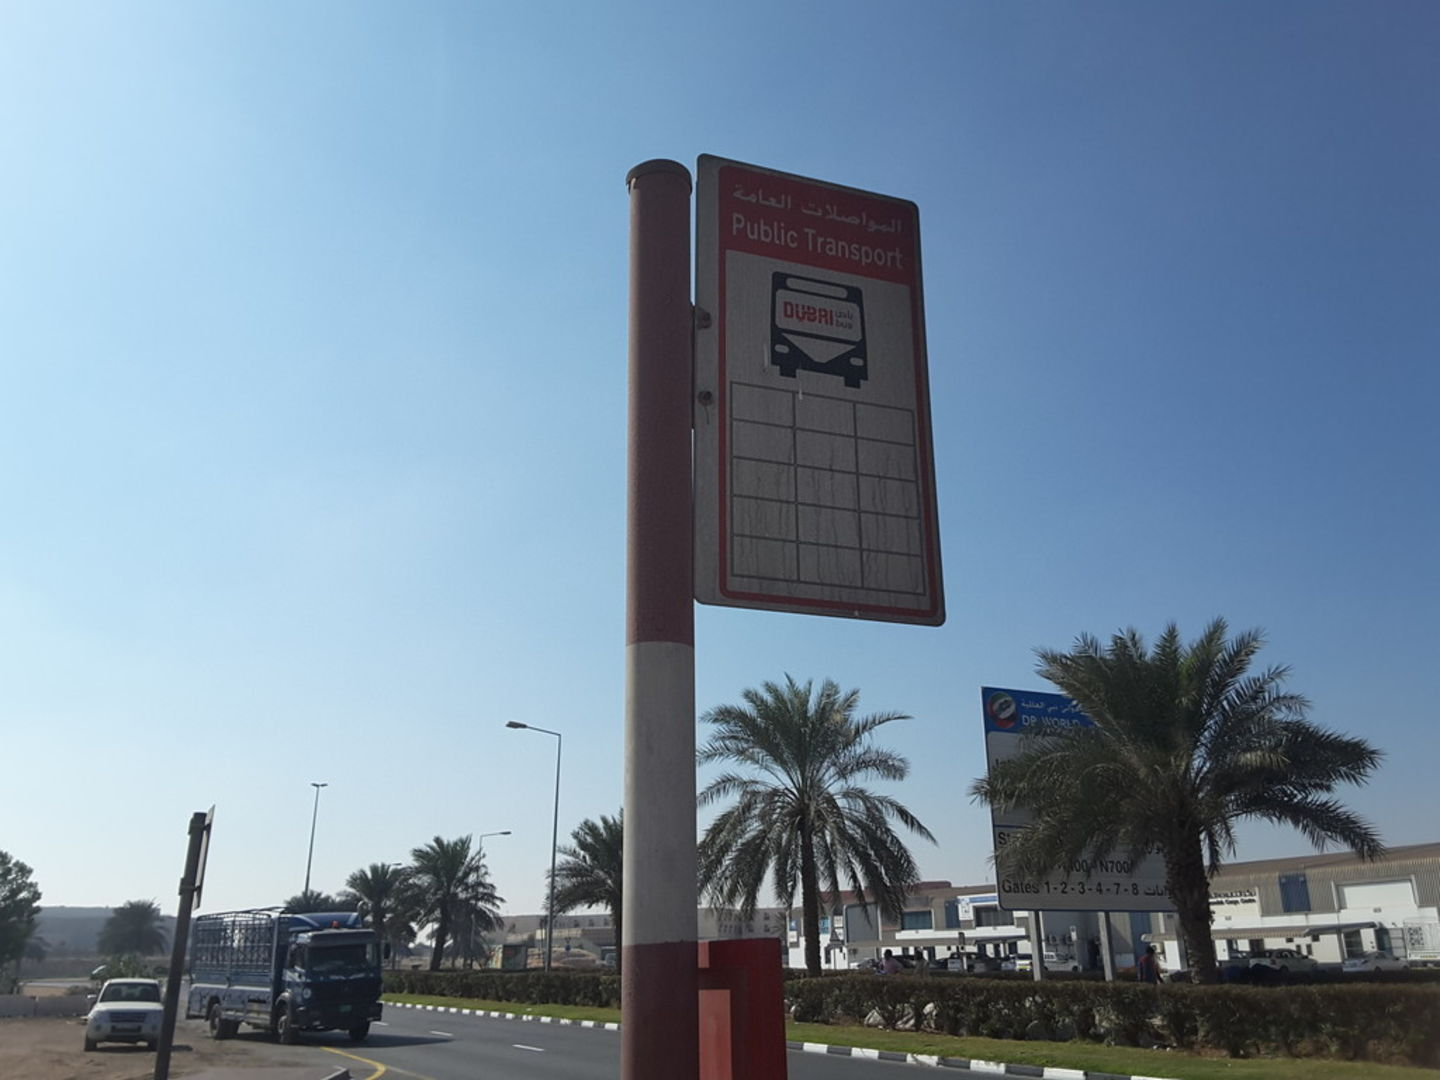 Naboodah Cargo Center 2 Bus Stop, (Public Transport) in Jebel Ali